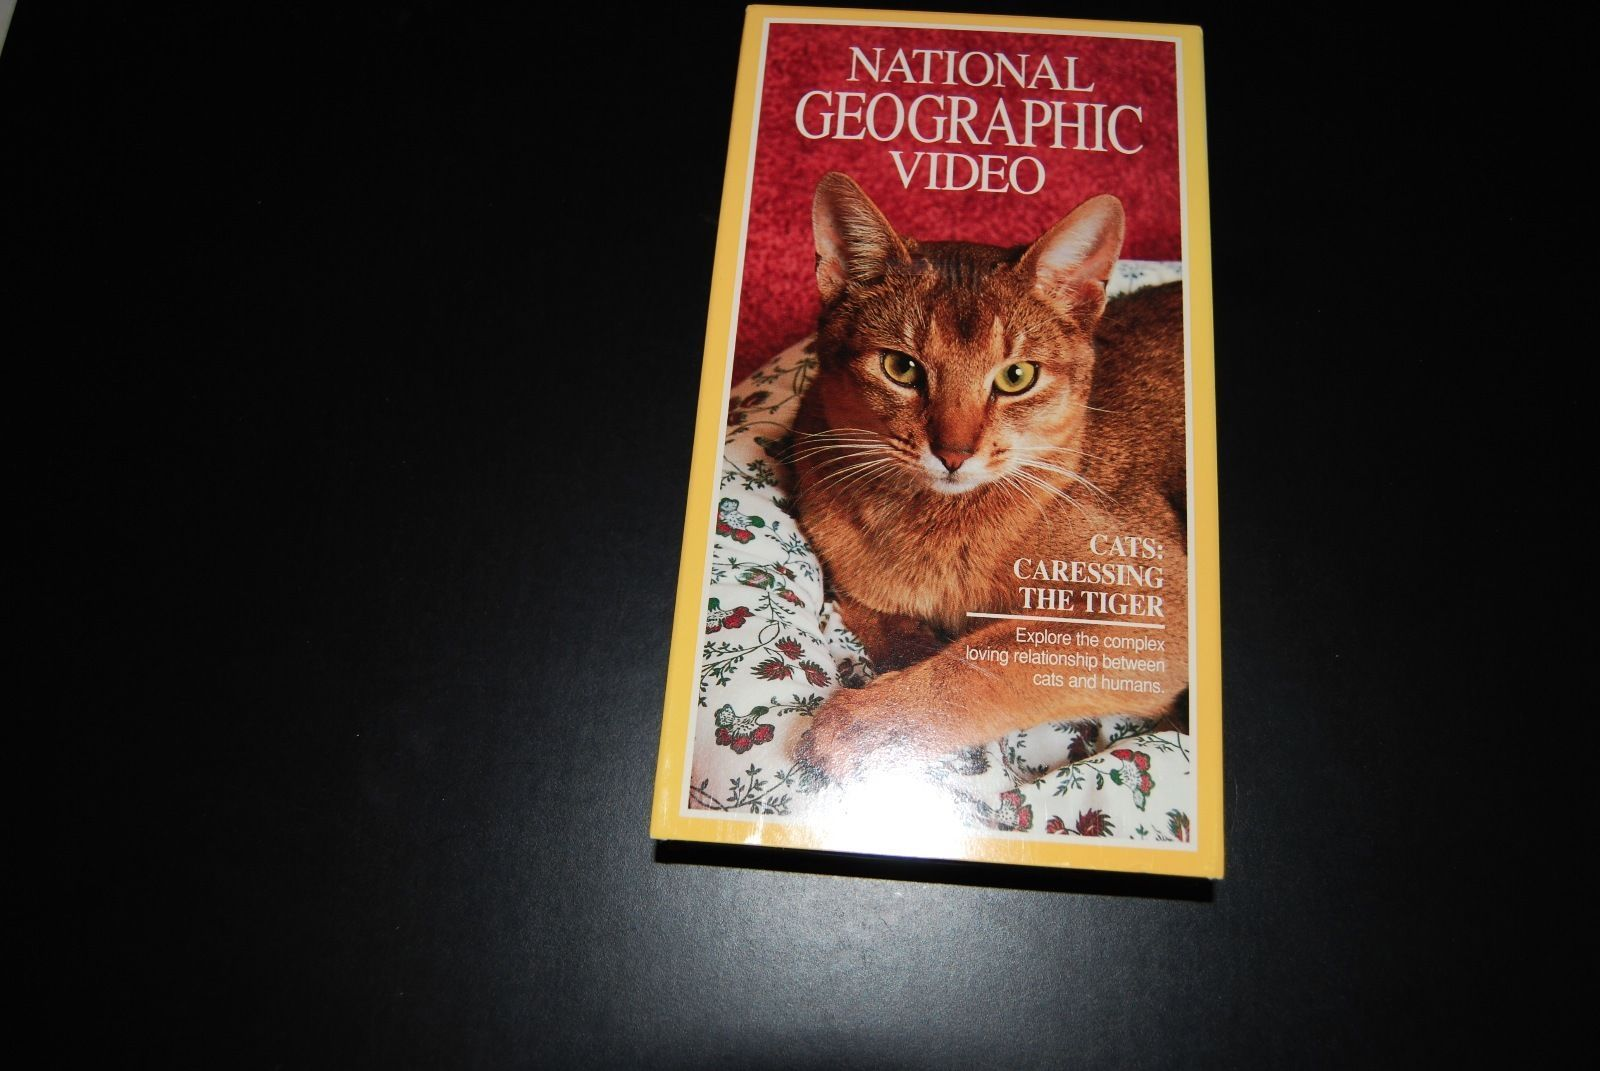 Primary image for National Geographic Video - Cats: Caressing the Tiger (VHS, 1992)